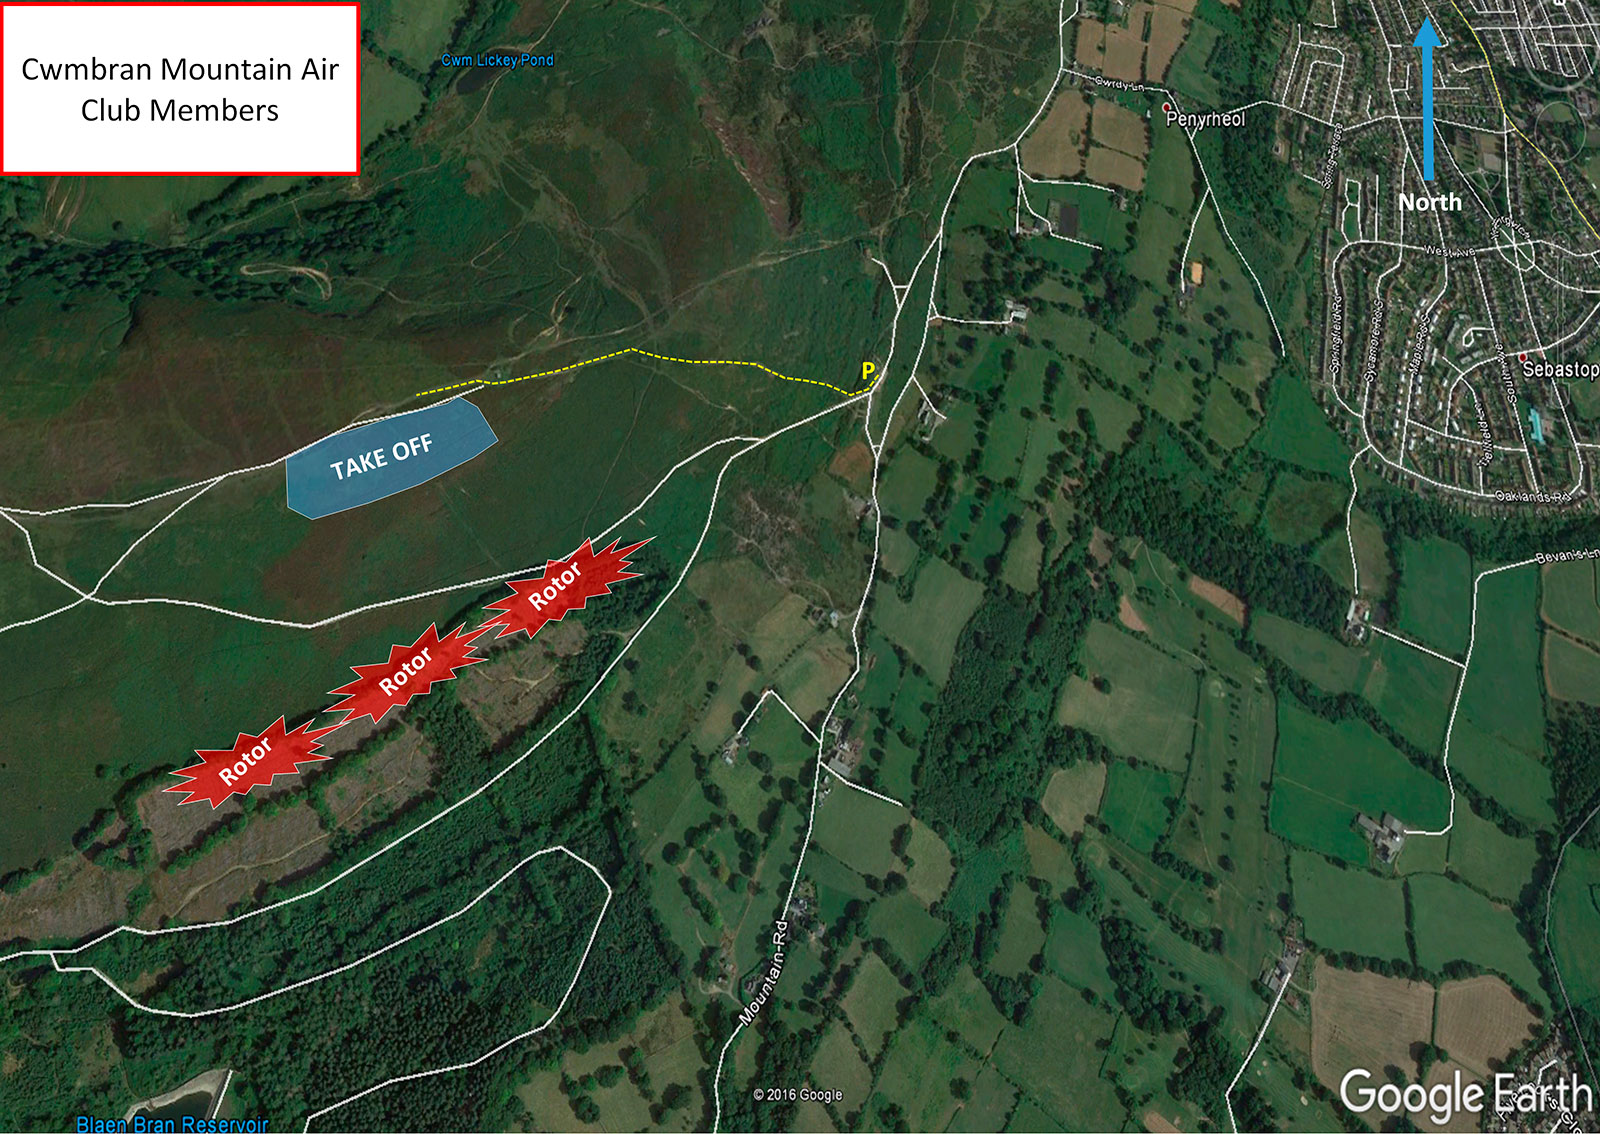 cwmbran-mountain-air-site-image-map